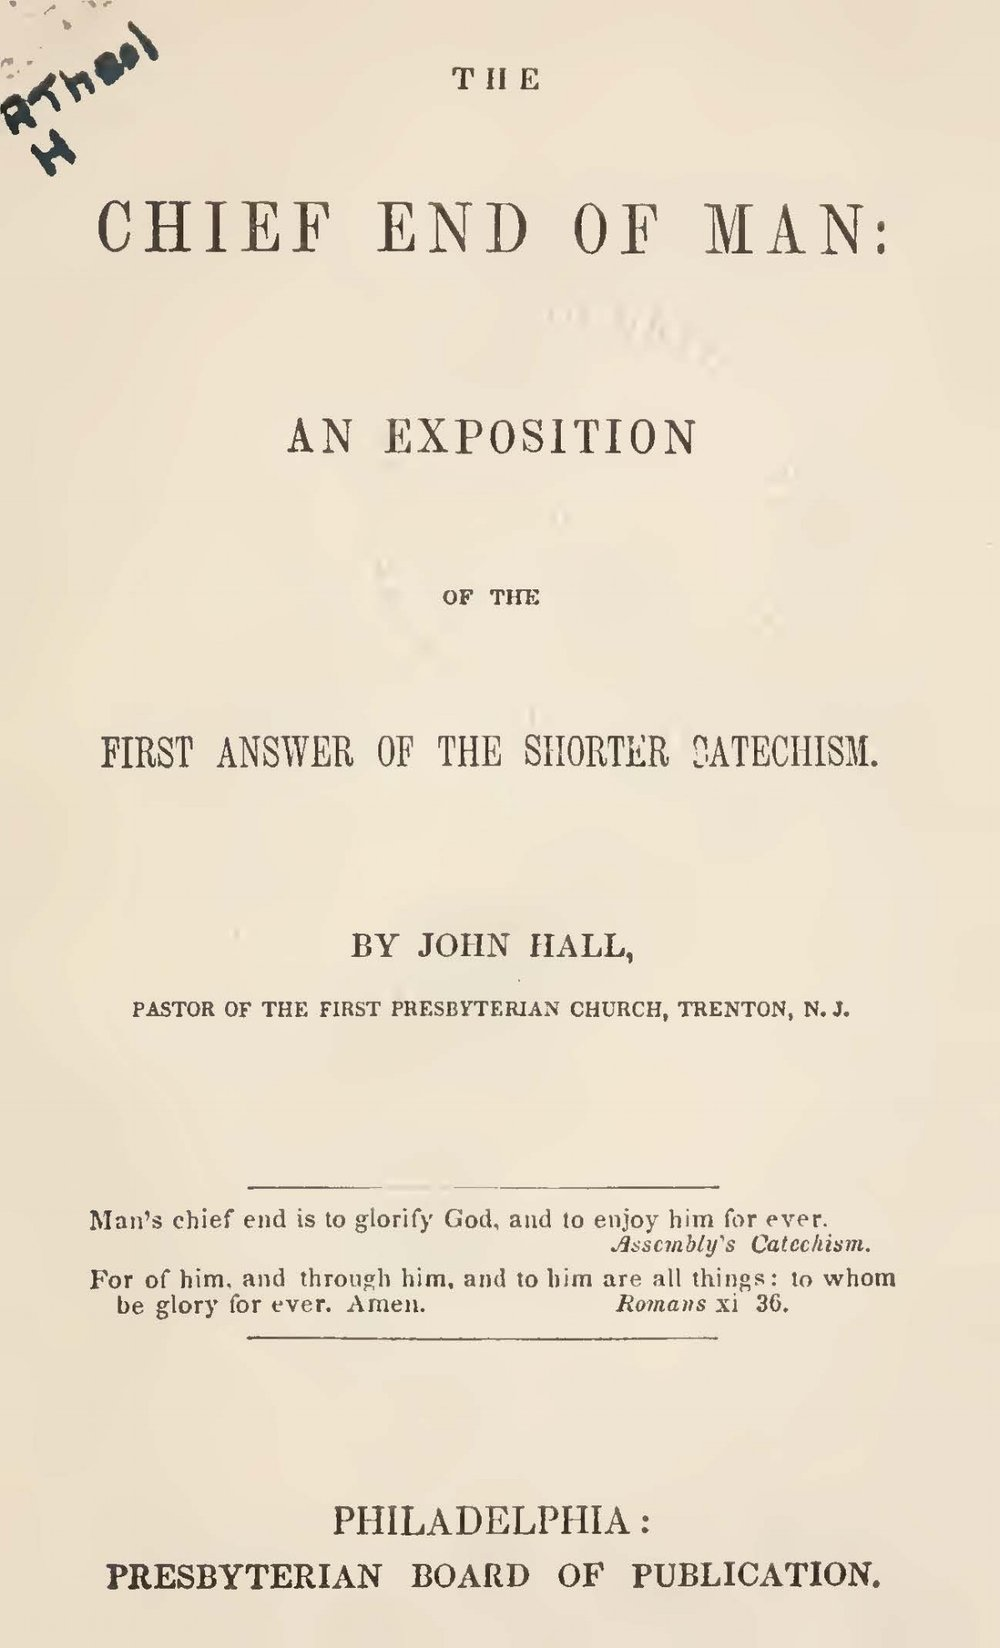 Hall, John, The Chief End of Man An Exposition of the First Answer of the Shorter Catechism Title Page.jpg